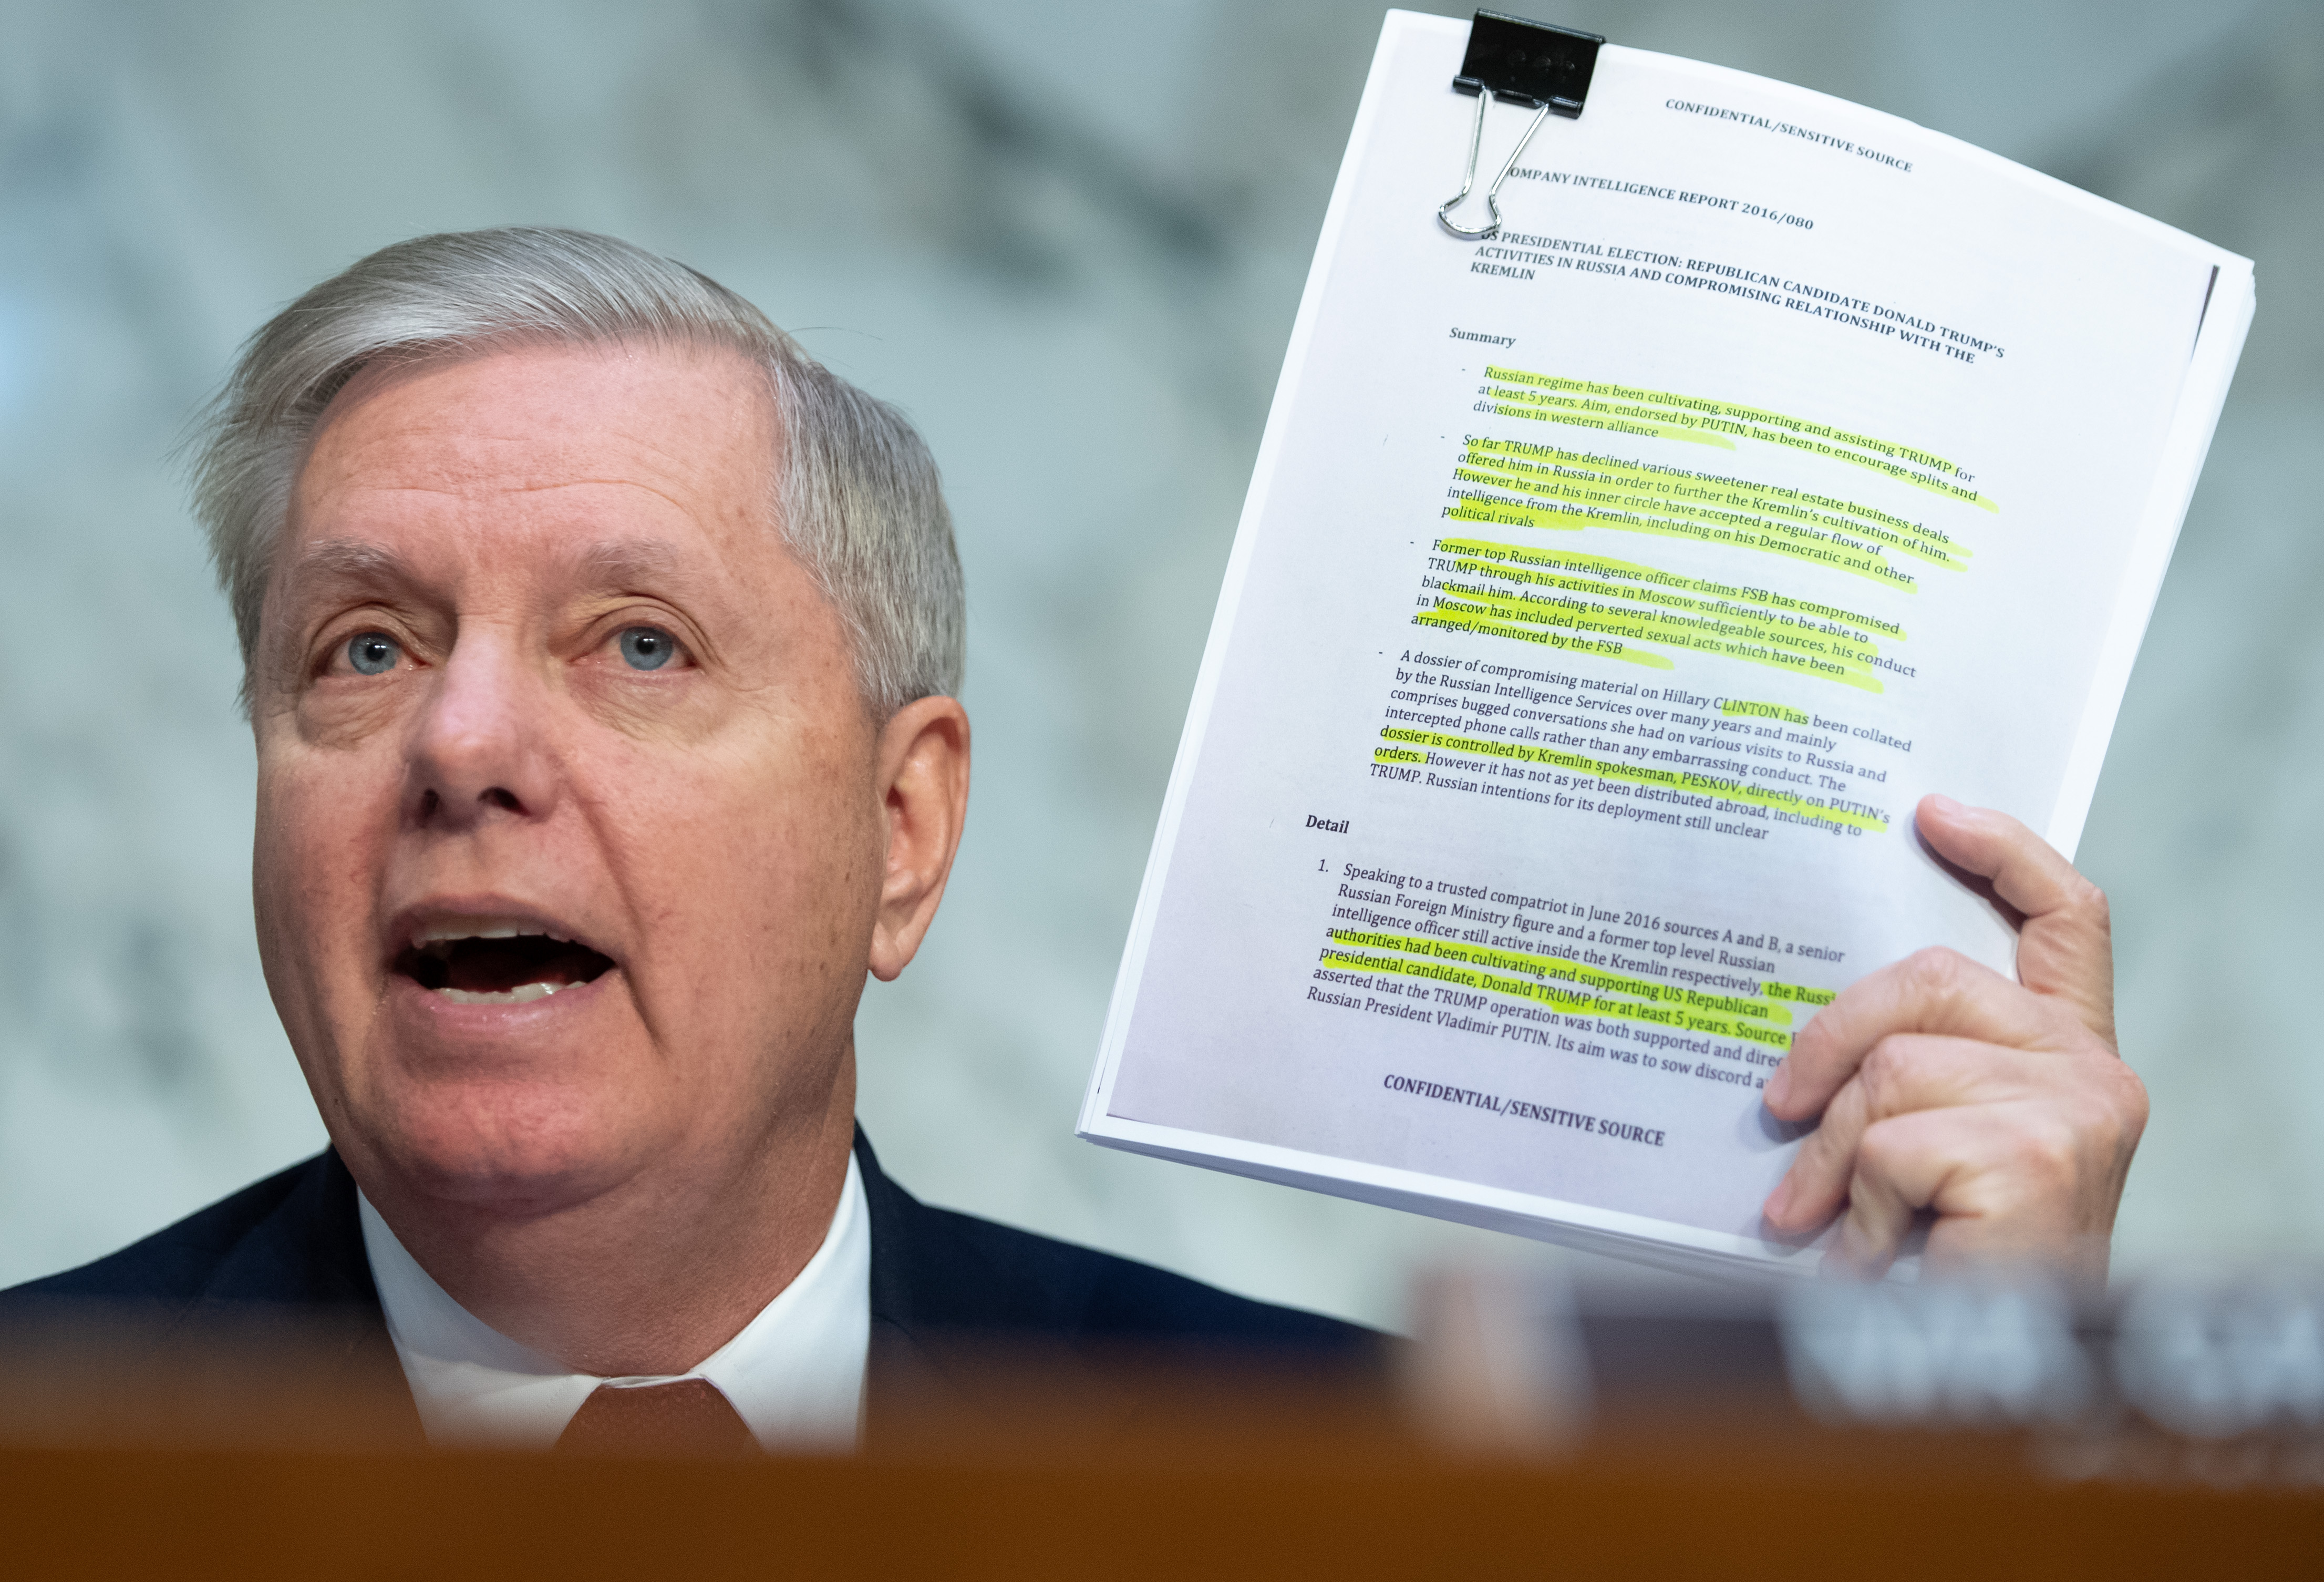 Chairman of the Senate Judiciary Committee Lindsey Graham, Republican of South Carolina, holds a copy of the Steele Dossier, as Justice Department Inspector General Michael Horowitz testifies about the Inspector General's report on alleged abuses of the Foreign Intelligence Surveillance Act (FISA) during a Senate Judiciary Committee hearing on Capitol Hill in Washington, DC, December 11, 2019. (SAUL LOEB/AFP via Getty Images)